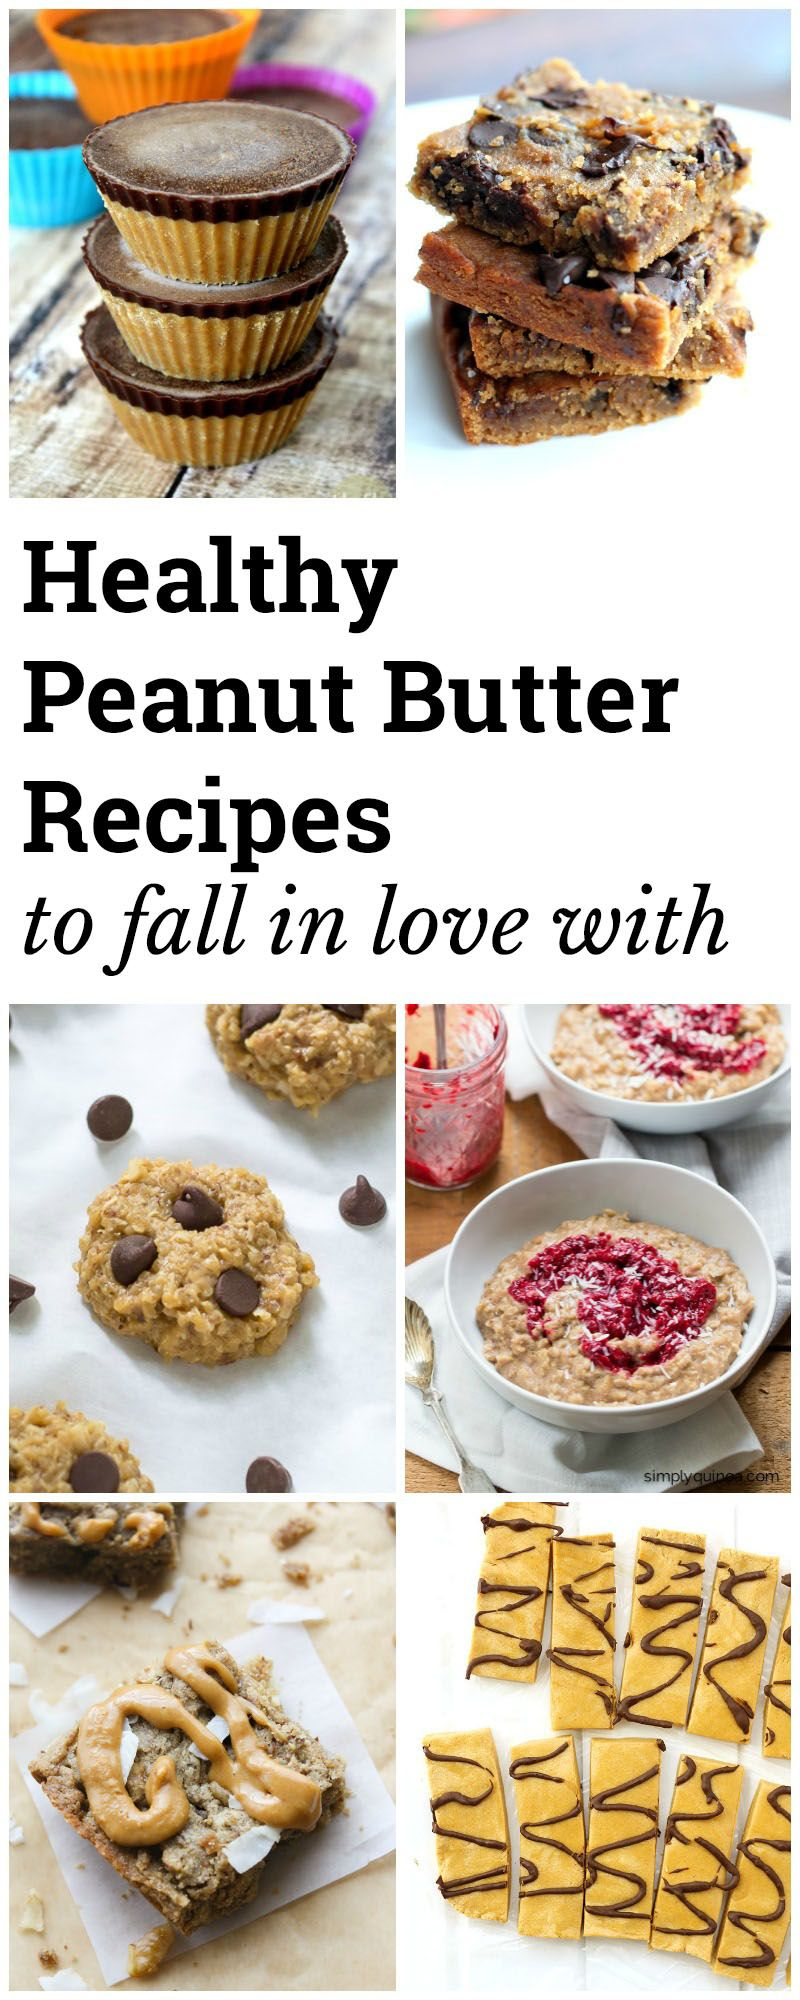 Healthy Peanut Butter Recipes to Fall in Love With | Peanut butter ...